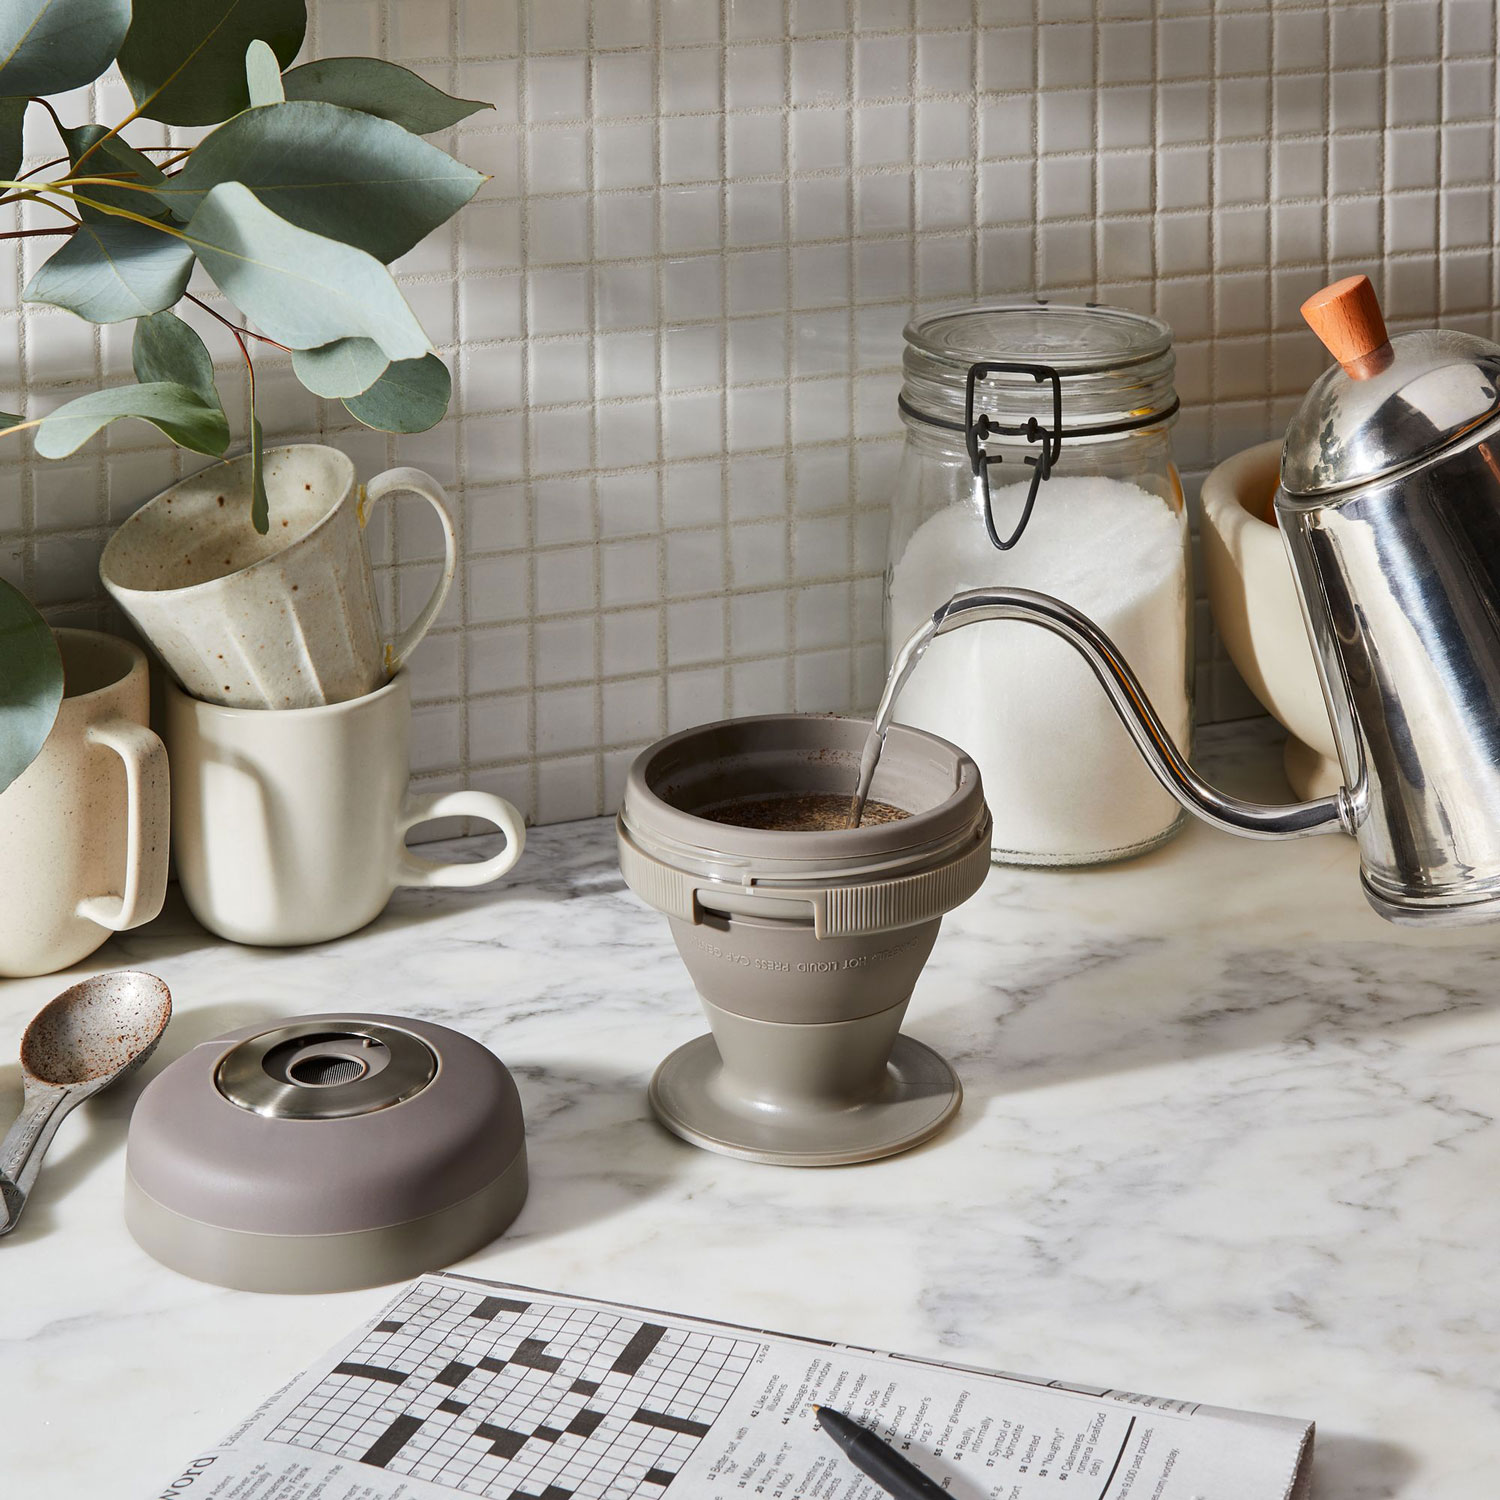 This Collapsible Coffee Press Will Help You Save Cabinet Space